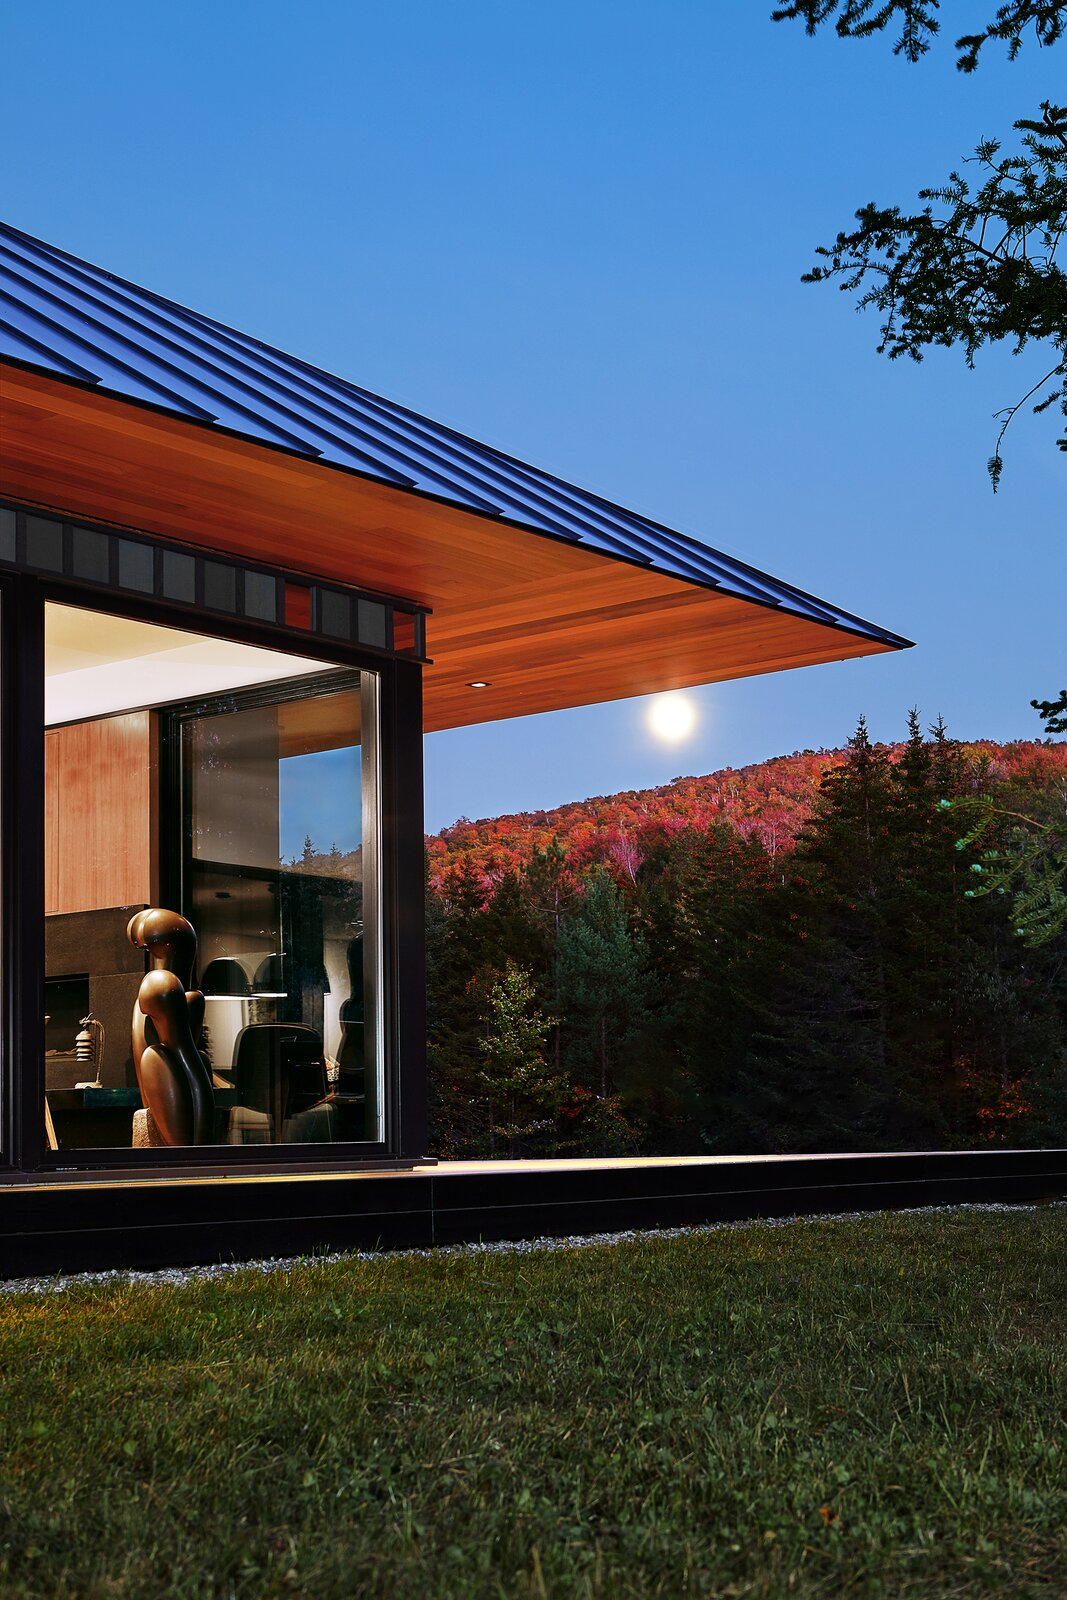 Exterior, House Building Type, Metal Roof Material, Metal Siding Material, Hipped RoofLine, and Wood Siding Material  Board & Batten by Birdseye